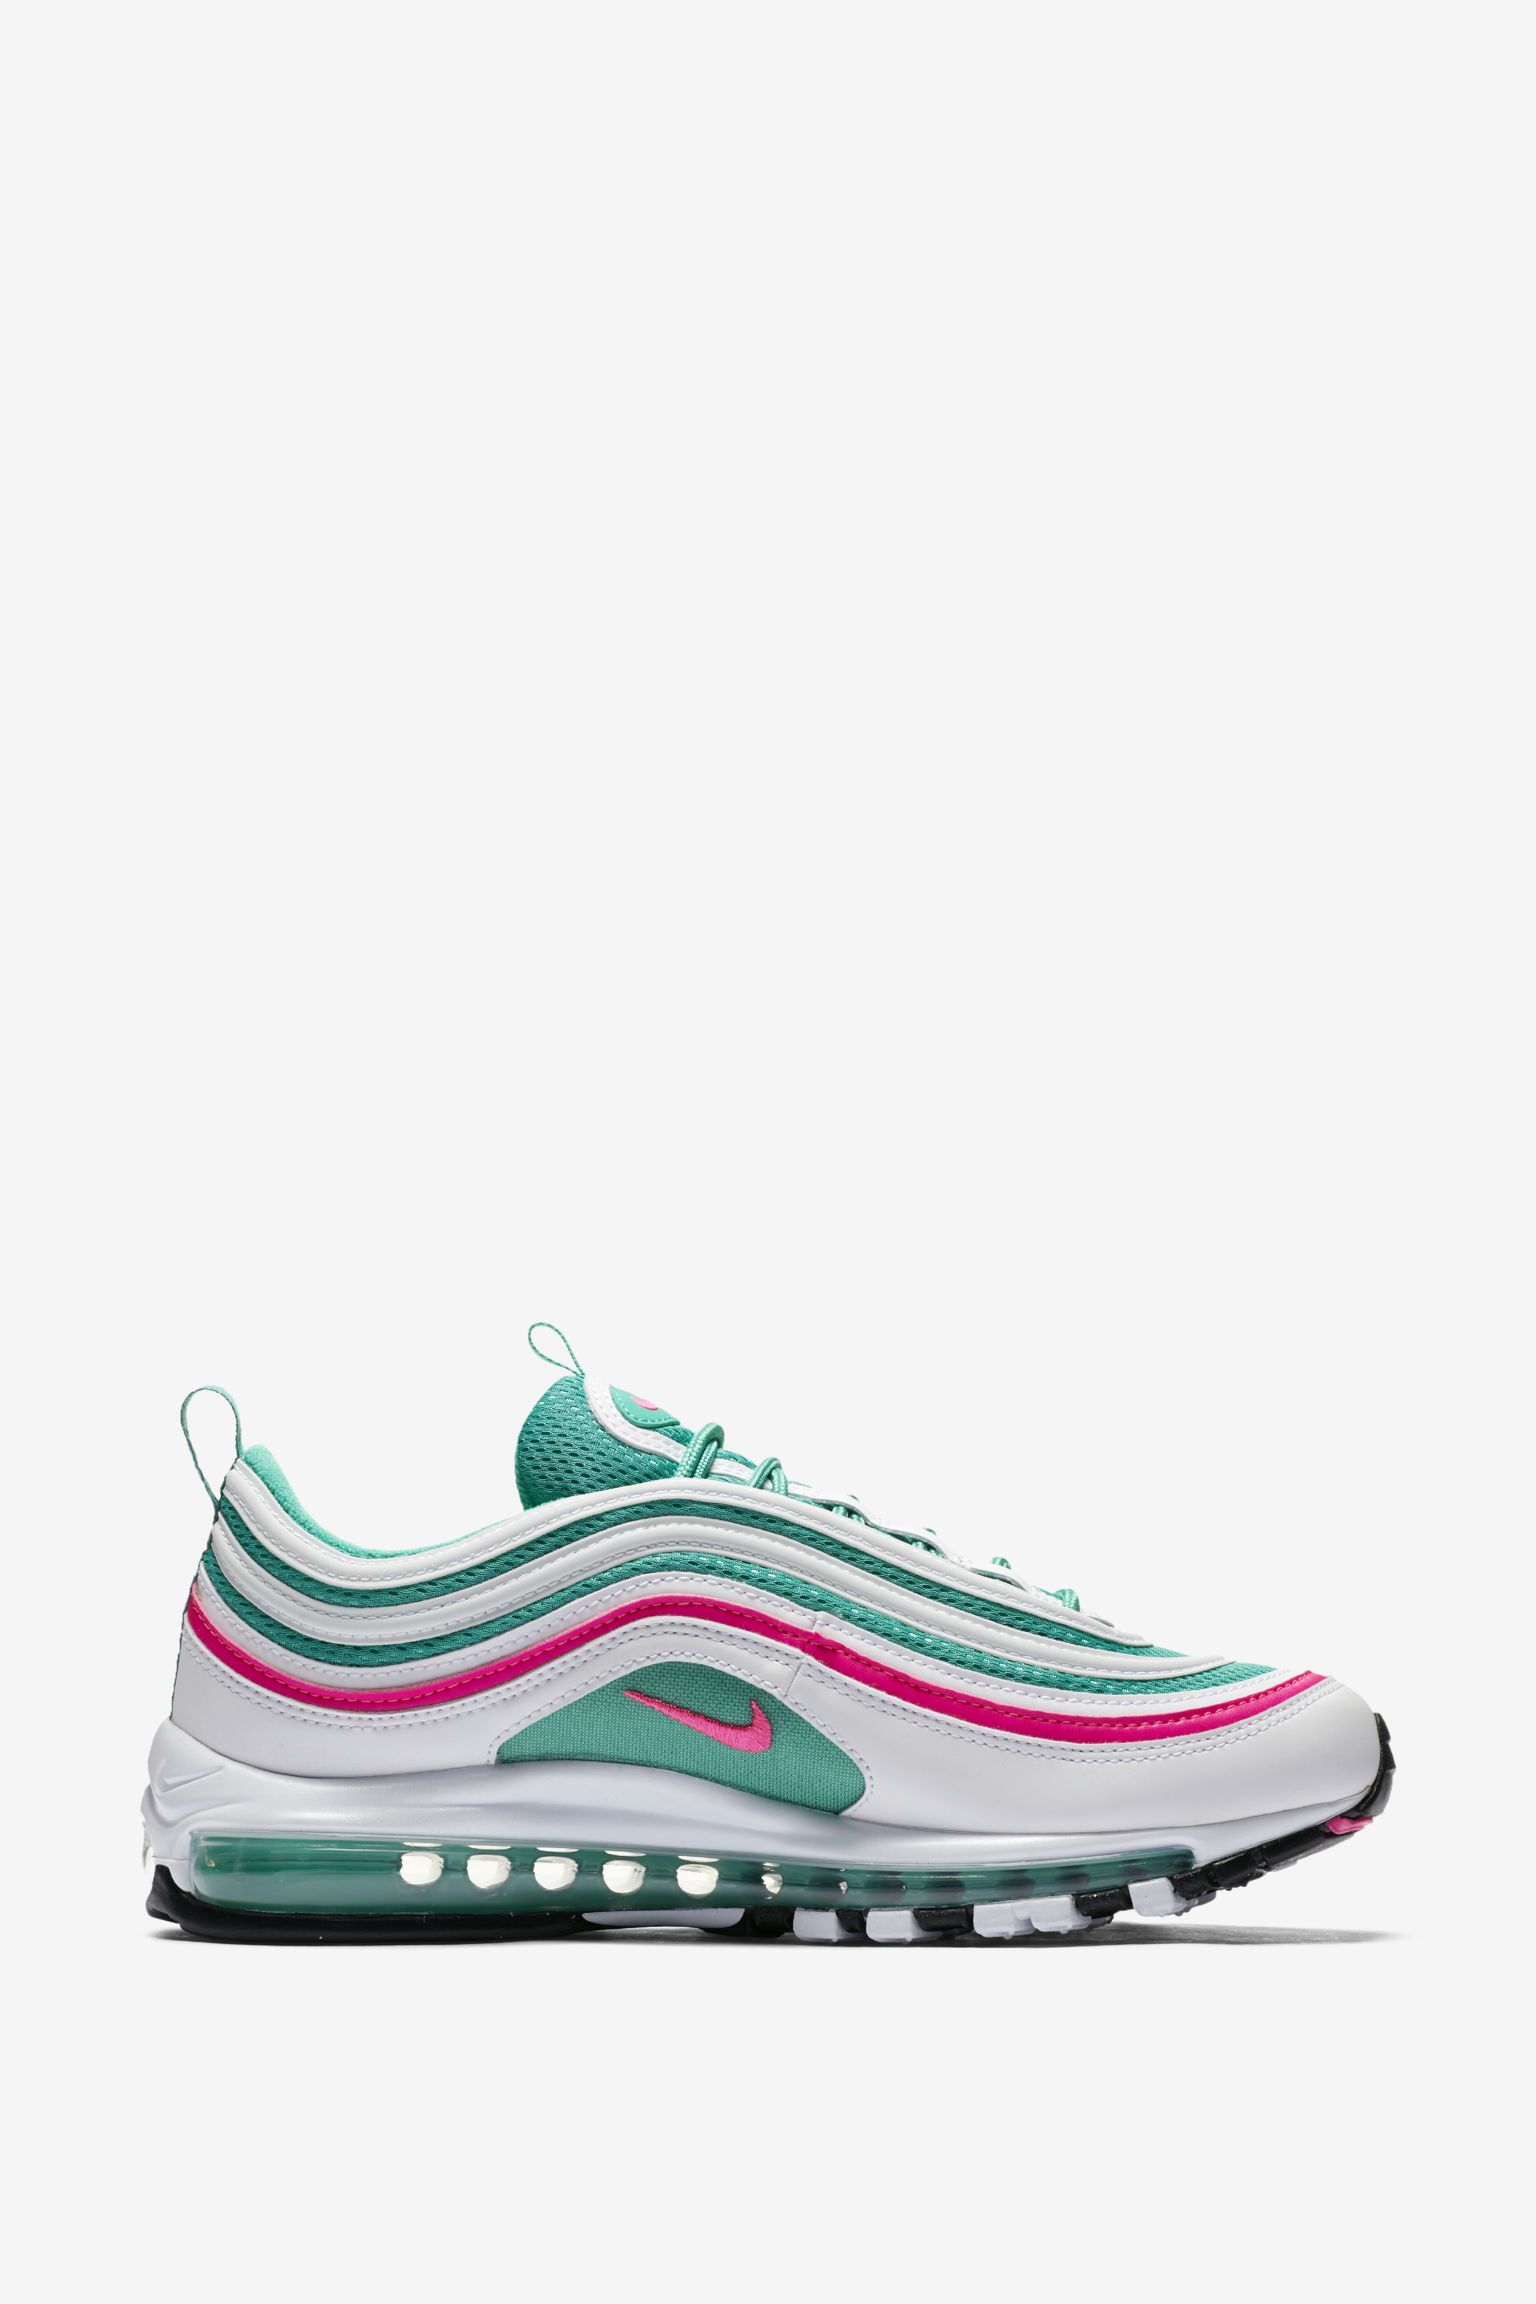 Cheap Nike Air Max 197 VF SW White Red Green Men's and Women's Running Shoes